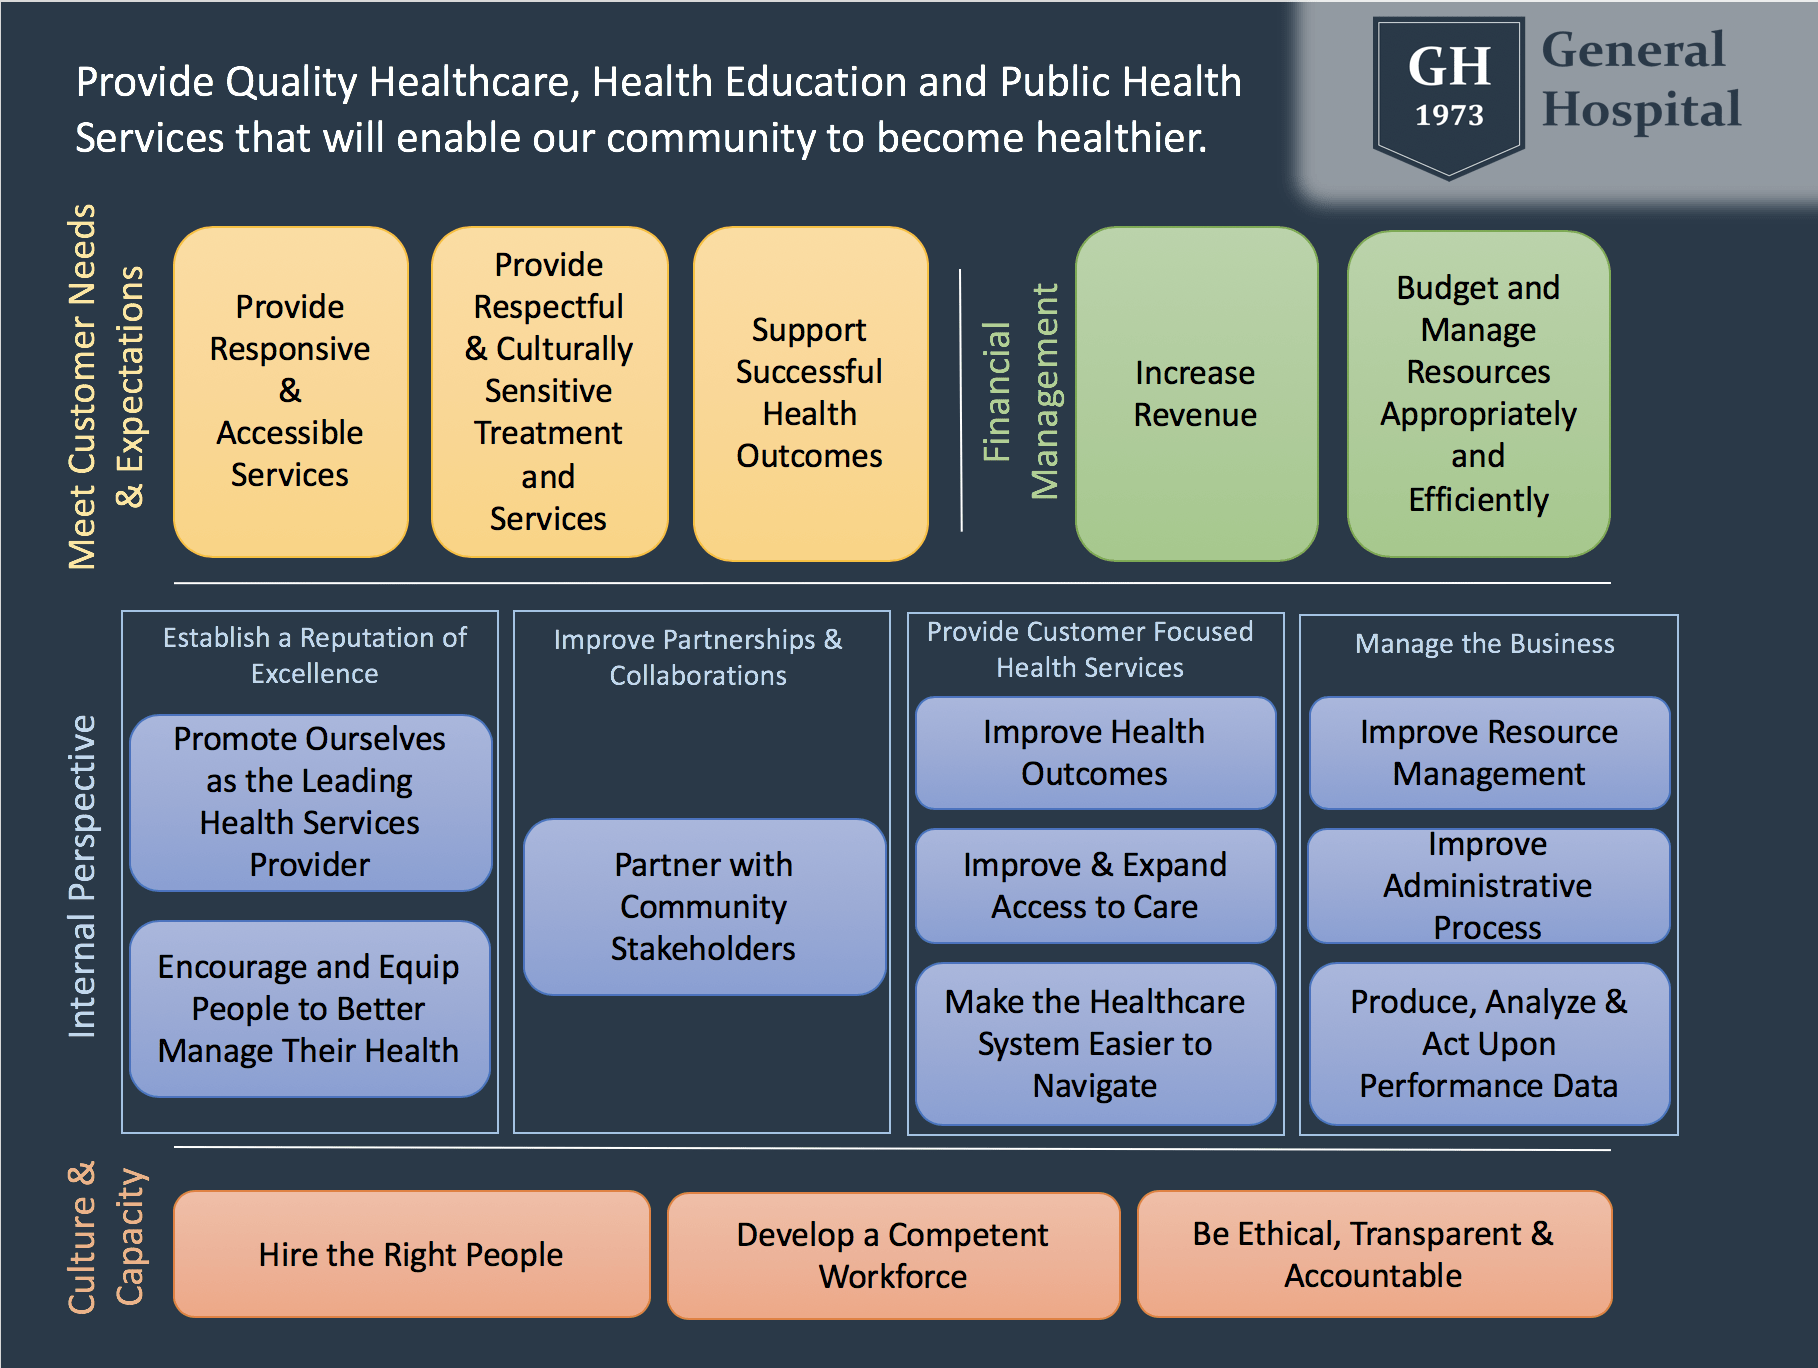 Healthcare strategy map: General Hospital